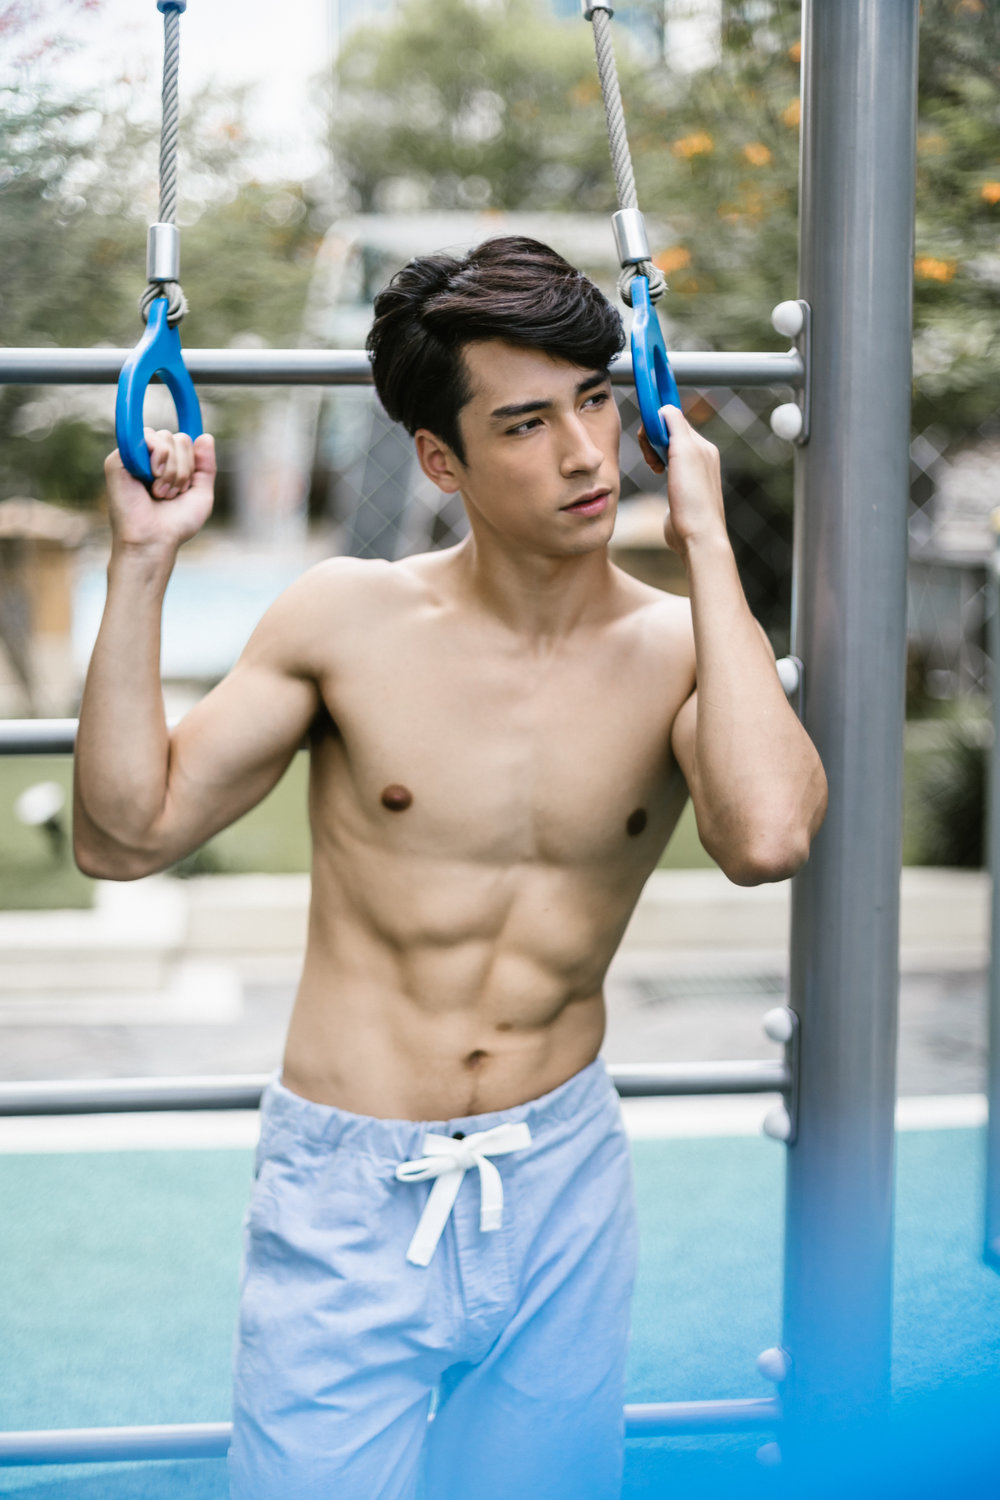 darren wong photography portrait model xavier upfront model ifitness magazine singapore